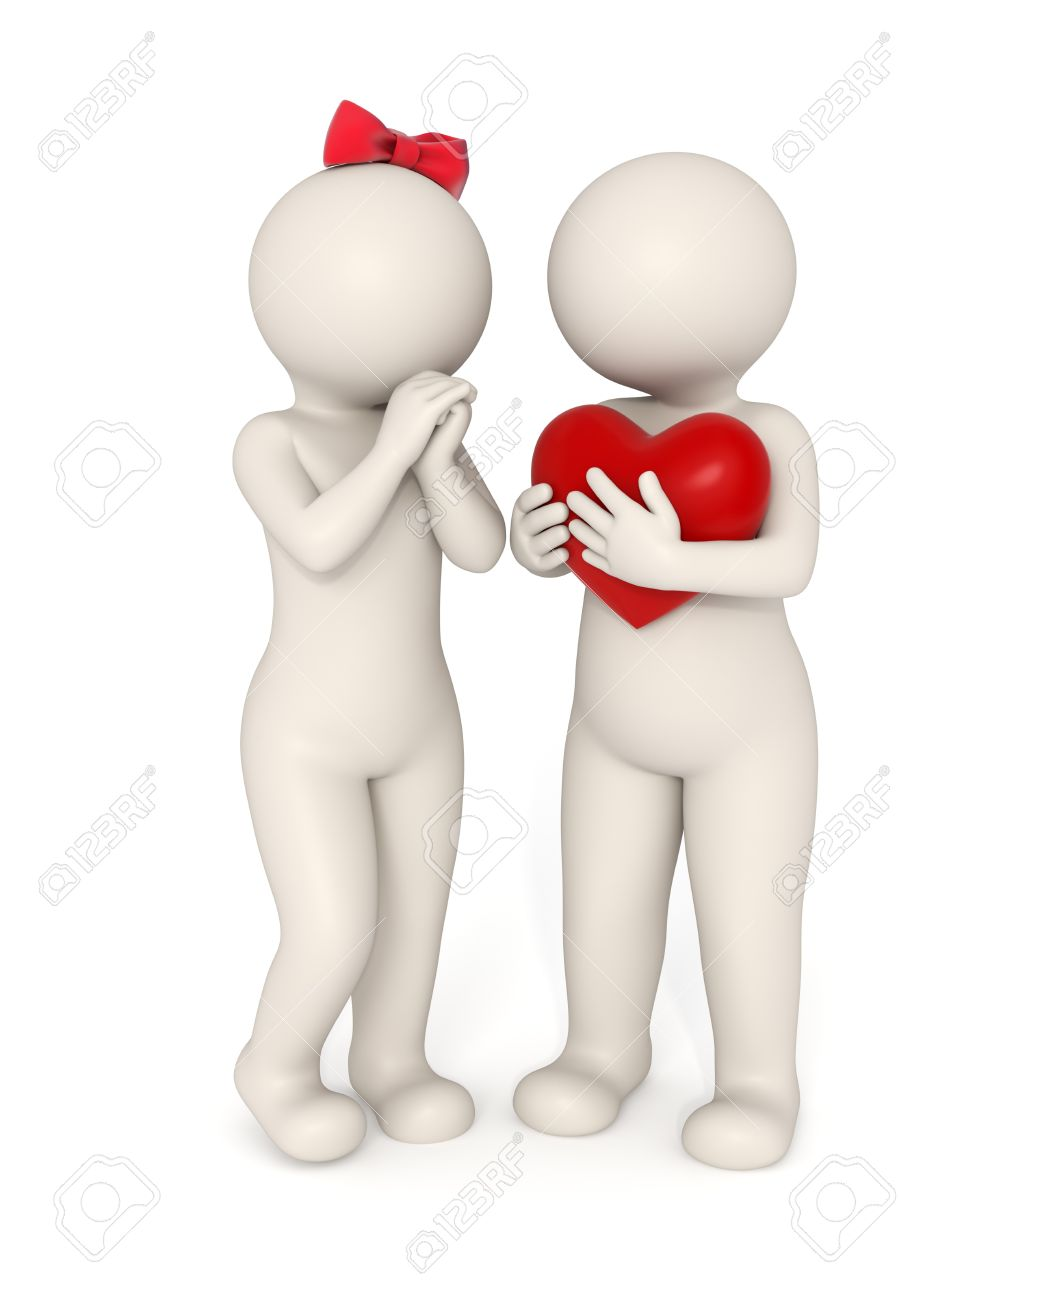 When A Man Gives His Heart To A Woman